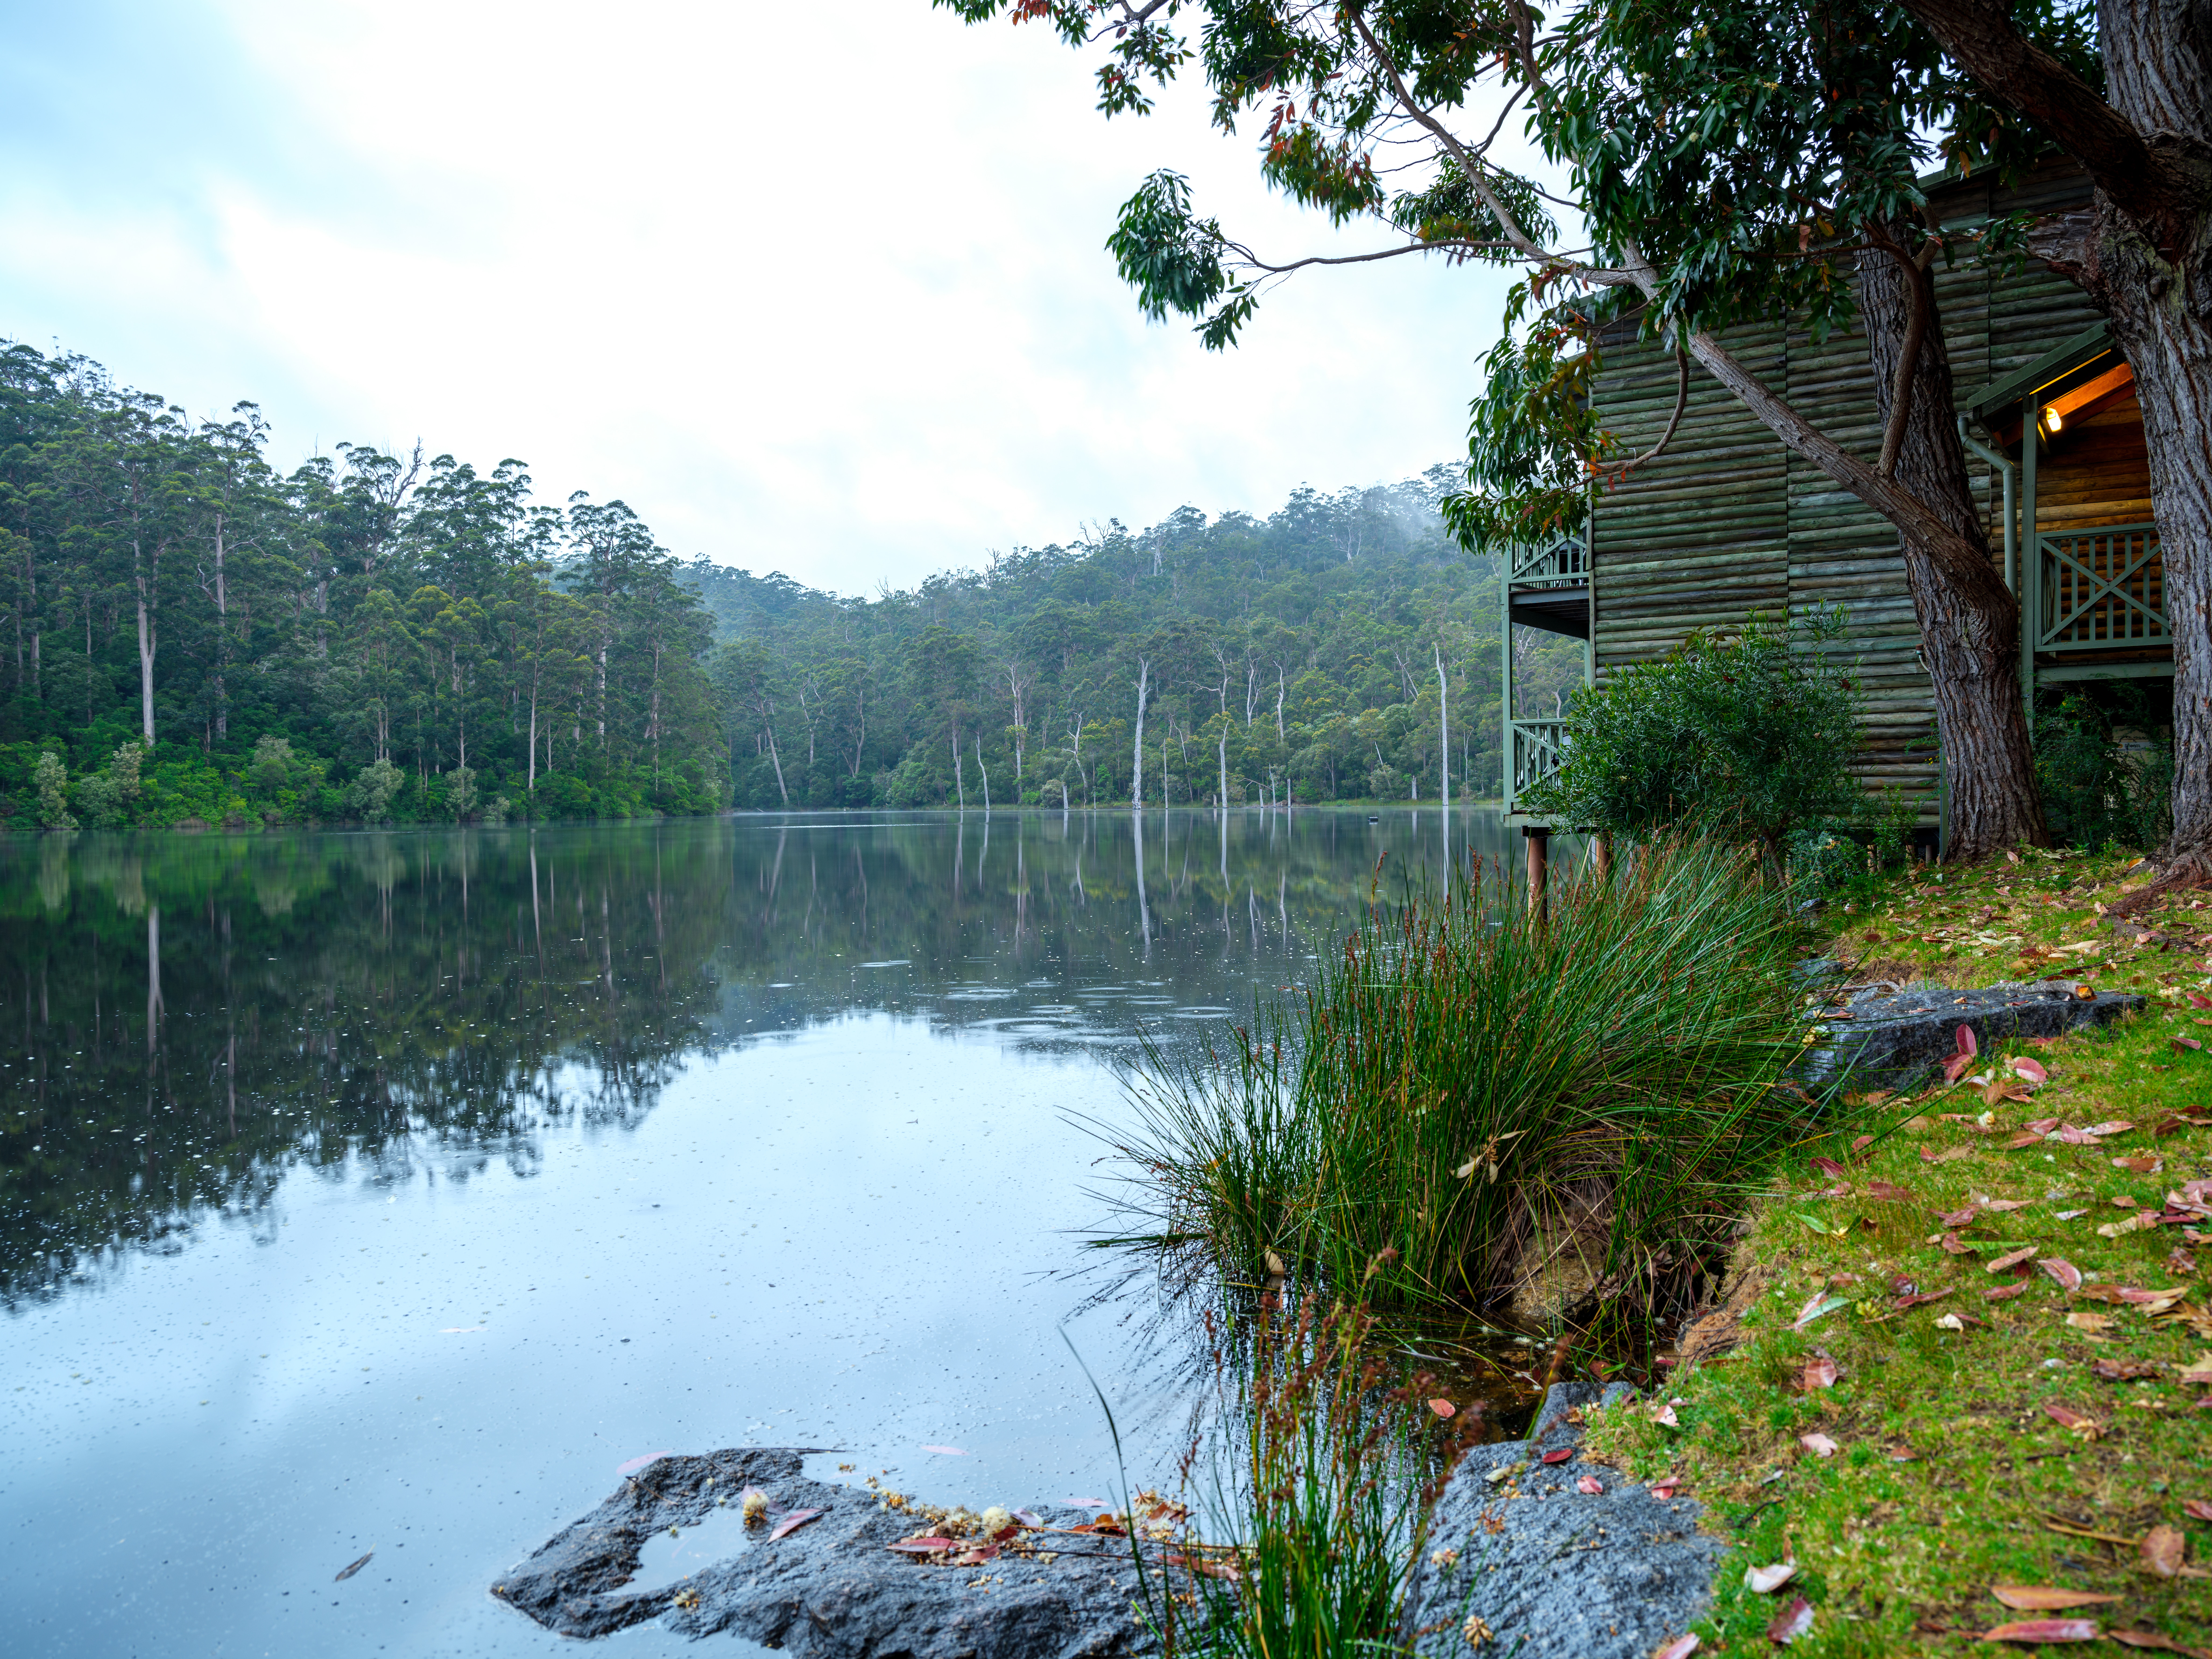 Karri Valley Resort, near Pemberton